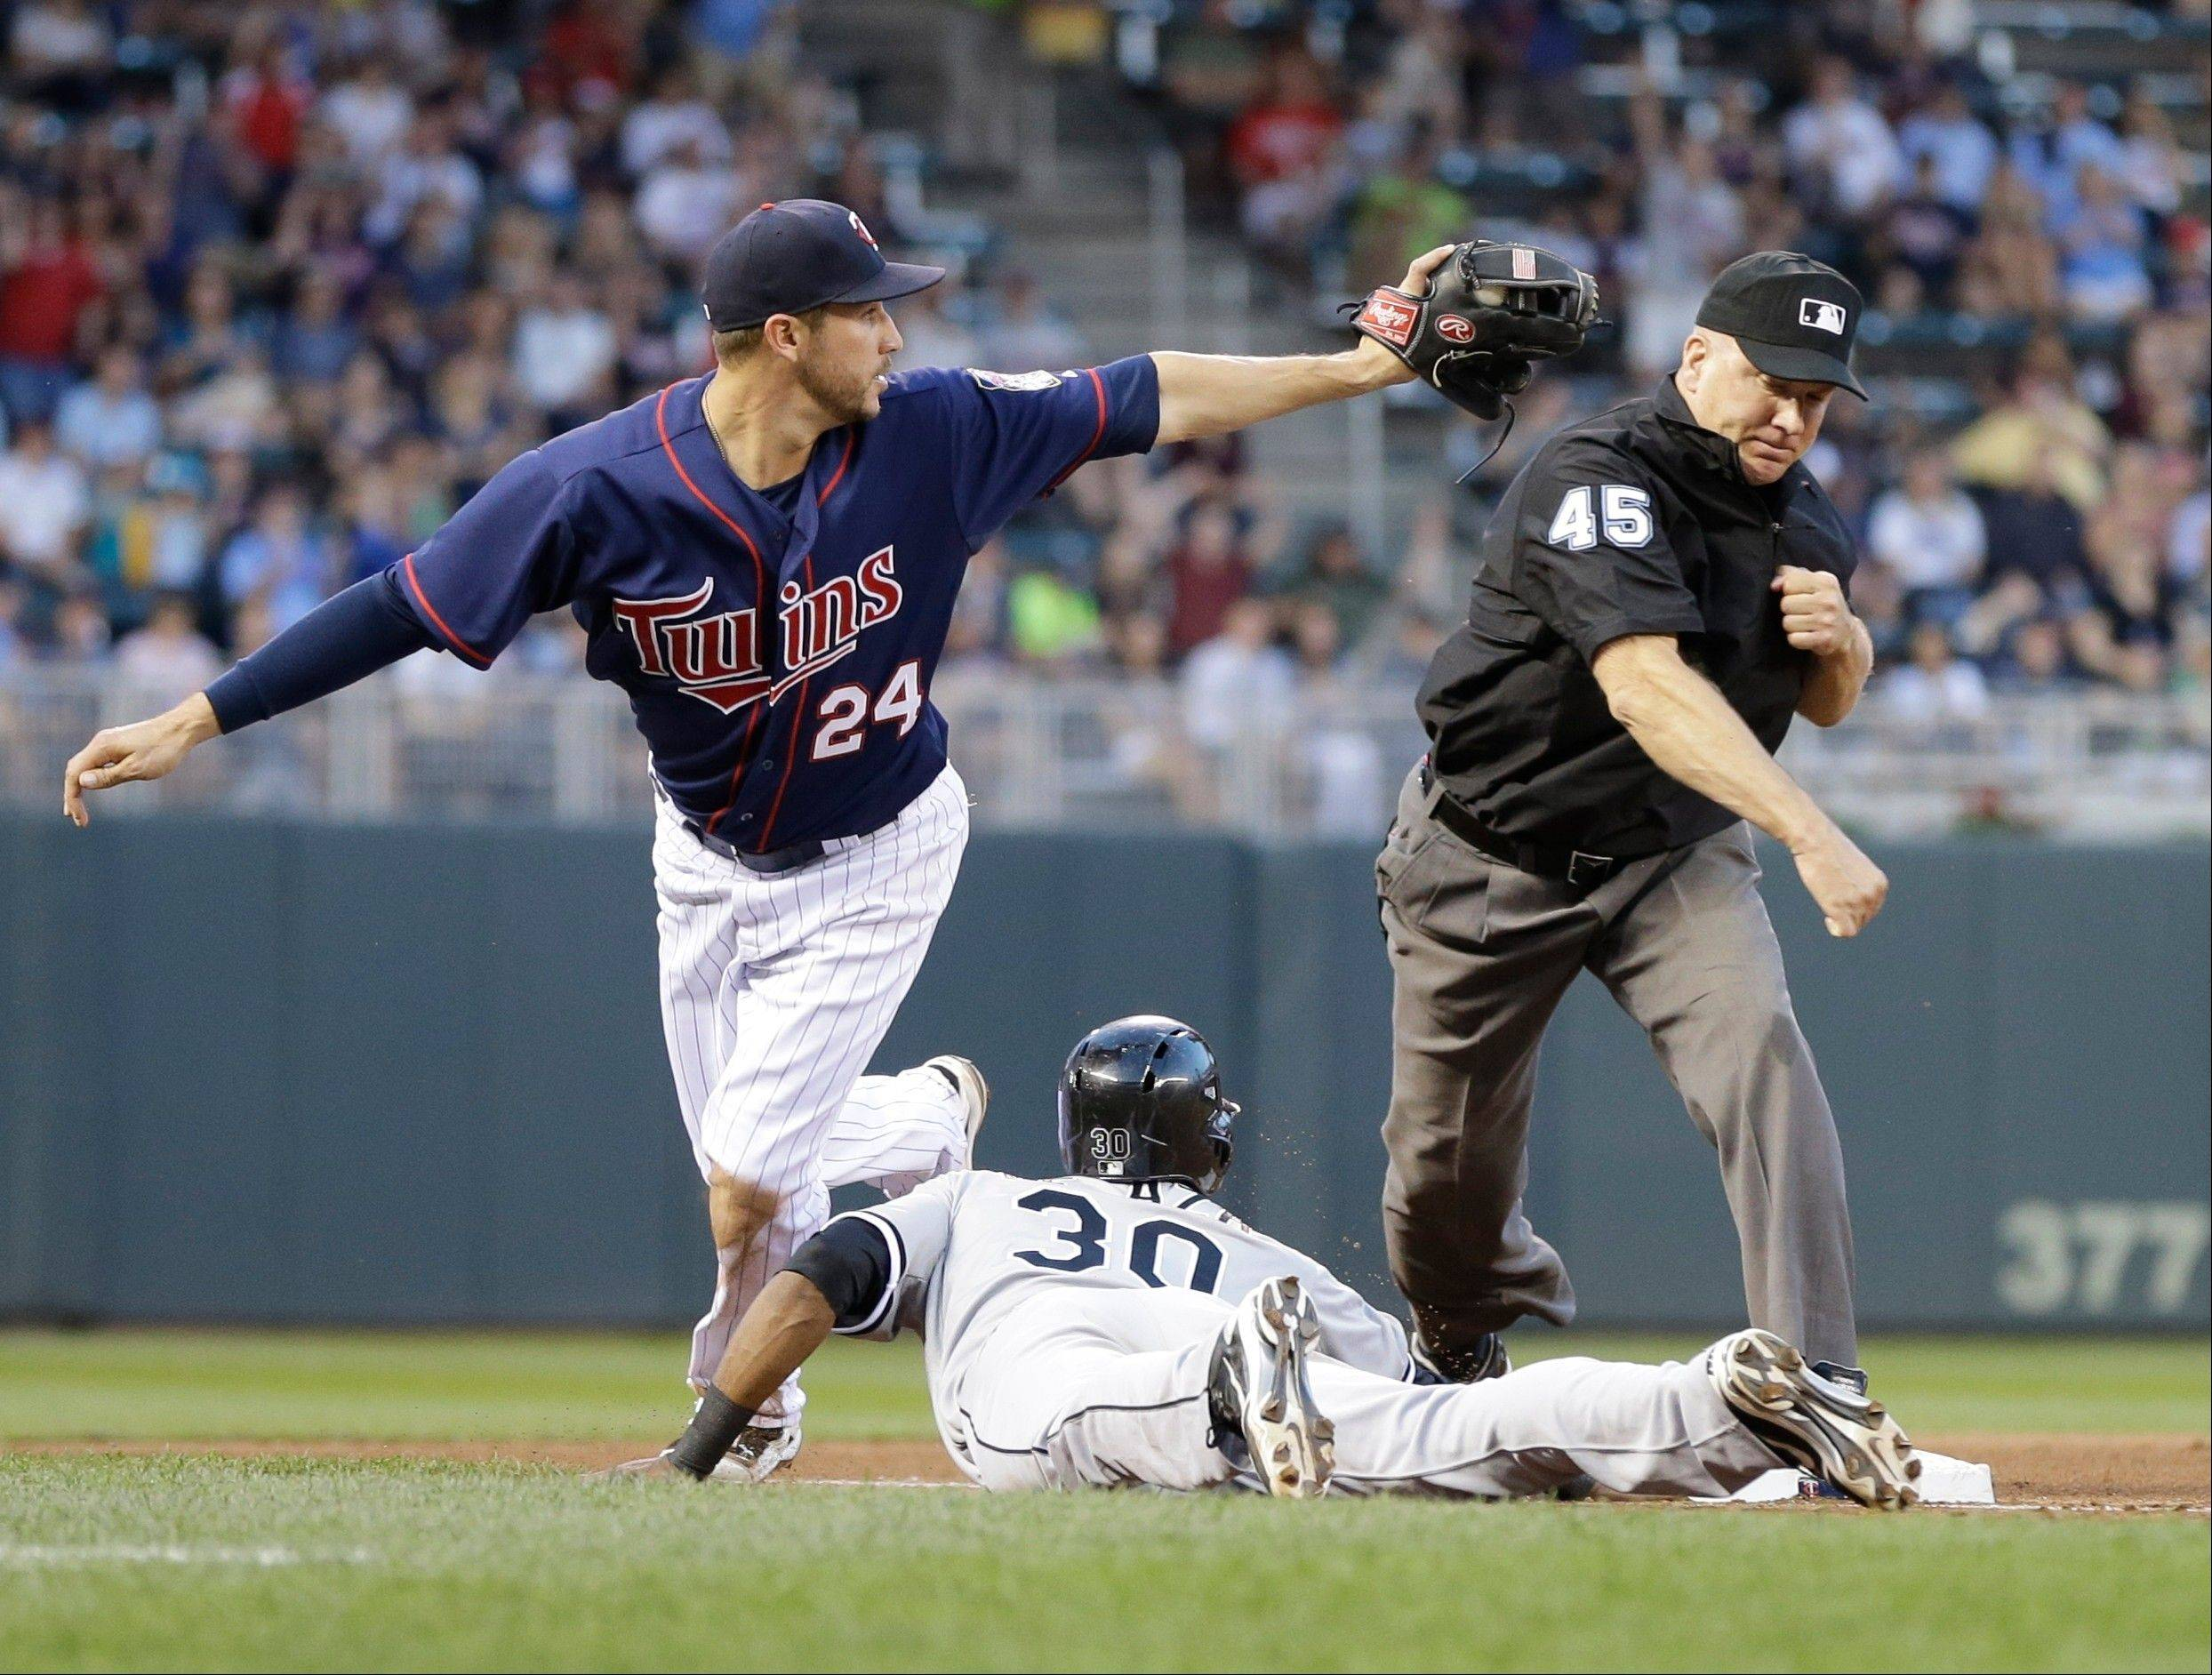 Third base umpire John Tumpane, right, calls the out on Chicago White Sox� Alejandro De Aza who was picked off third by Minnesota Twins third baseman Trevor Plouffe Tuesday night in Minneapolis.